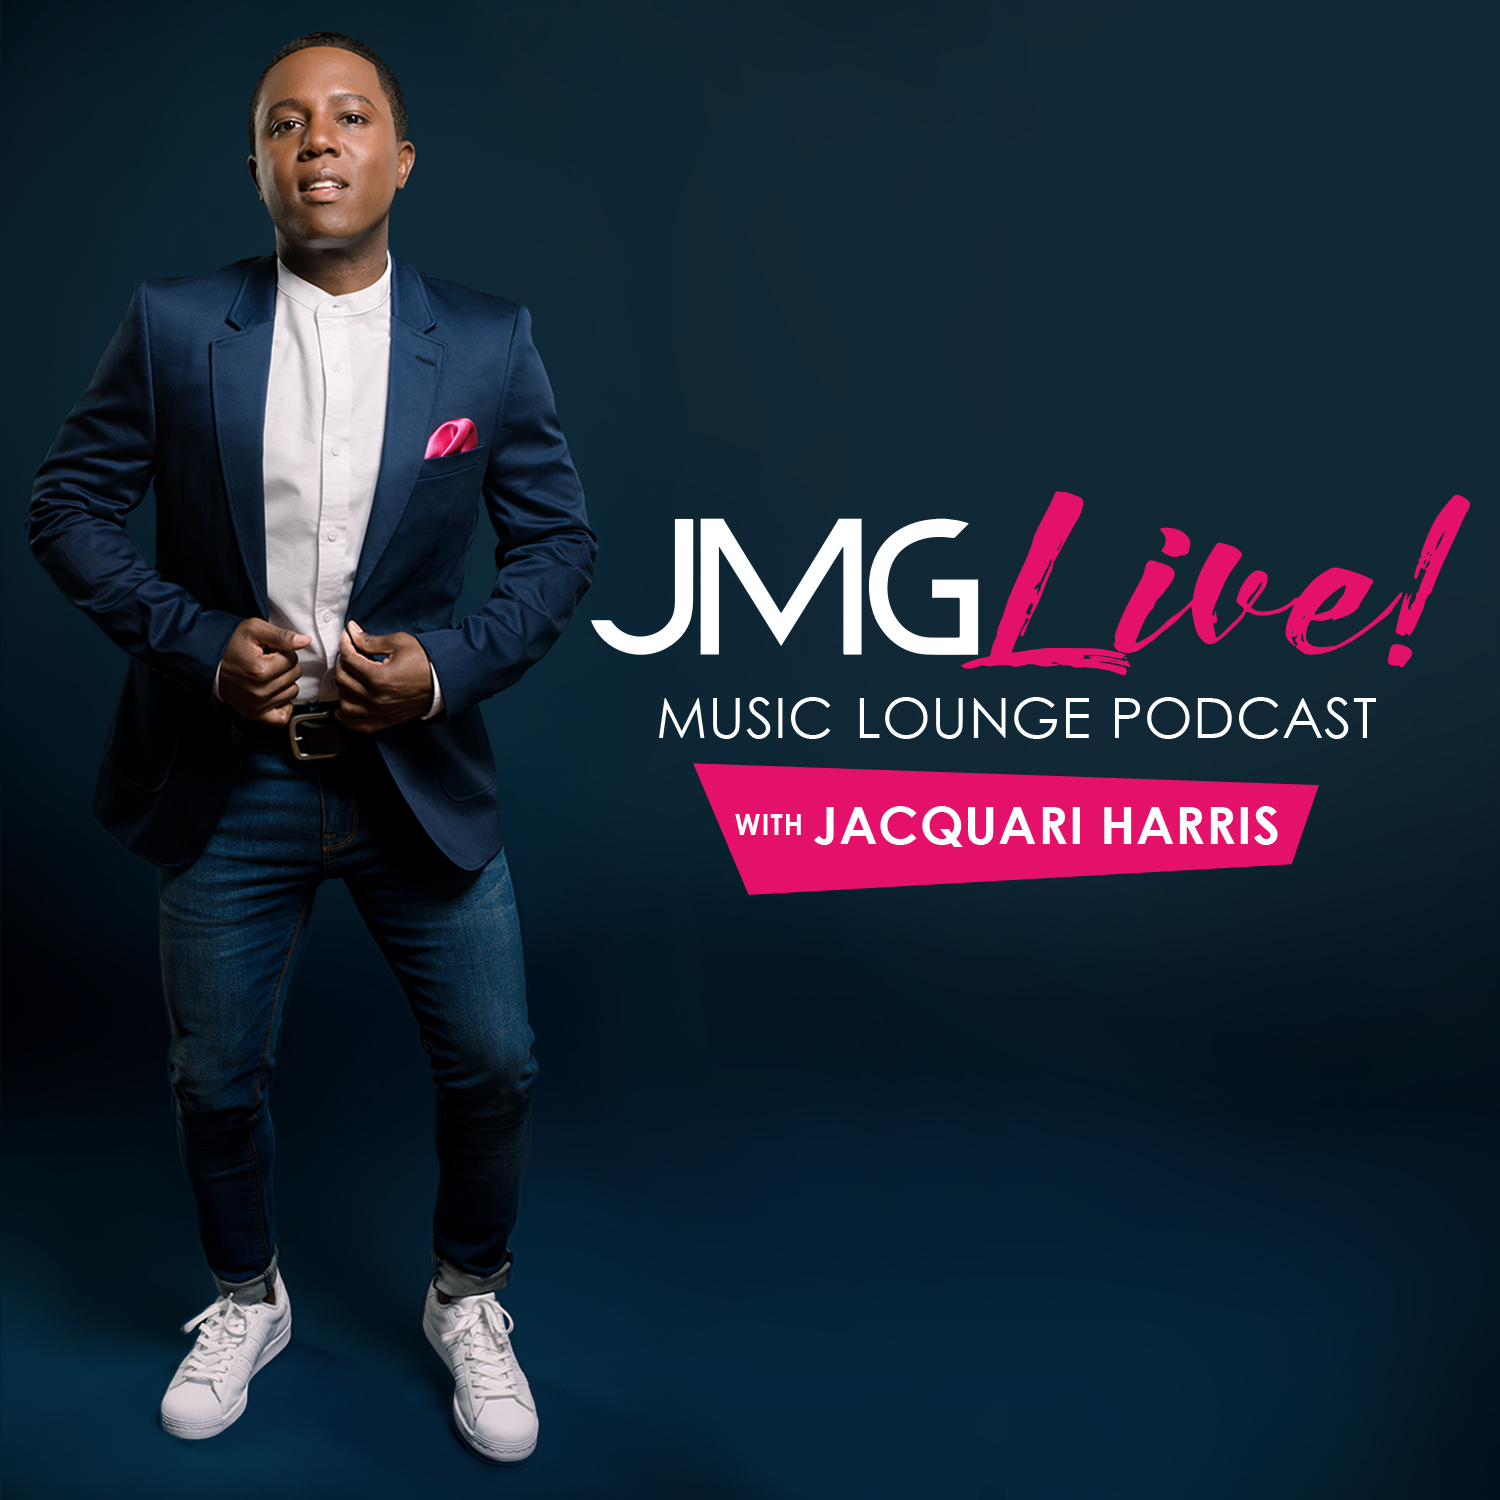 JMG Live! Music Lounge